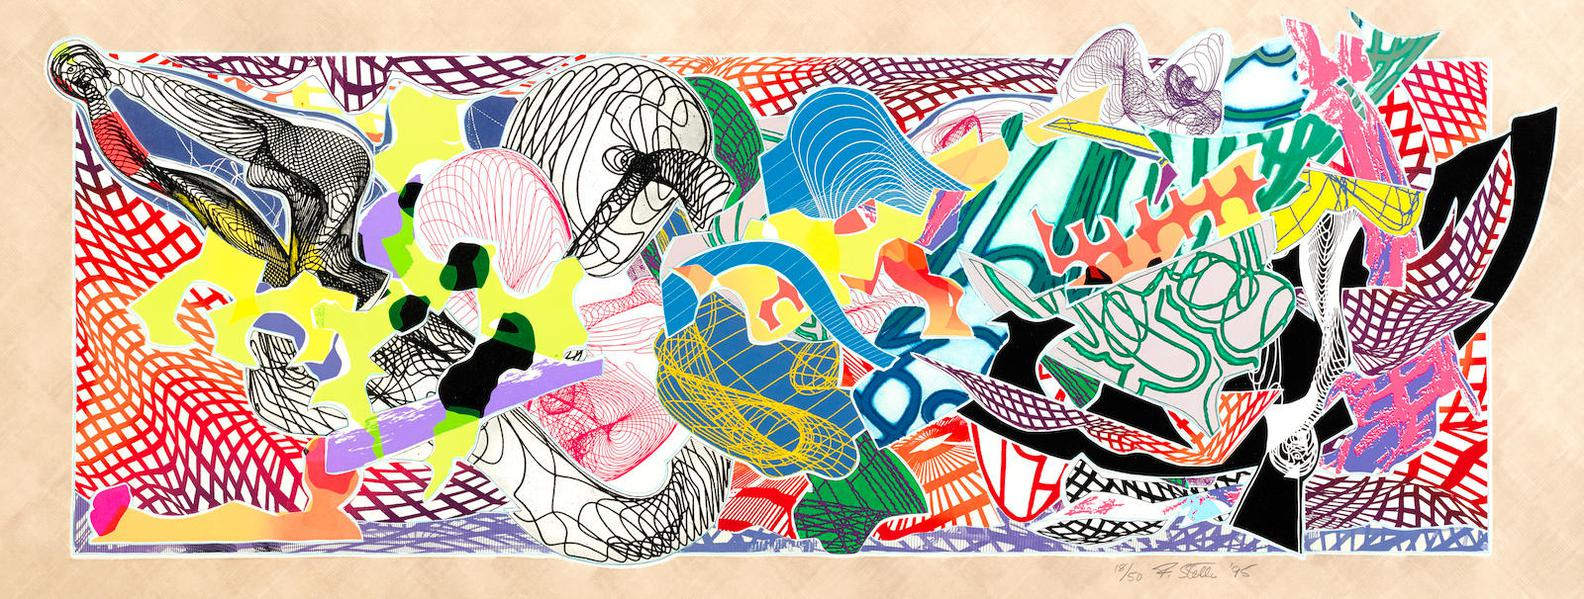 Frank Stella-Despairia, From Imaginary Places (A. 231)-1995